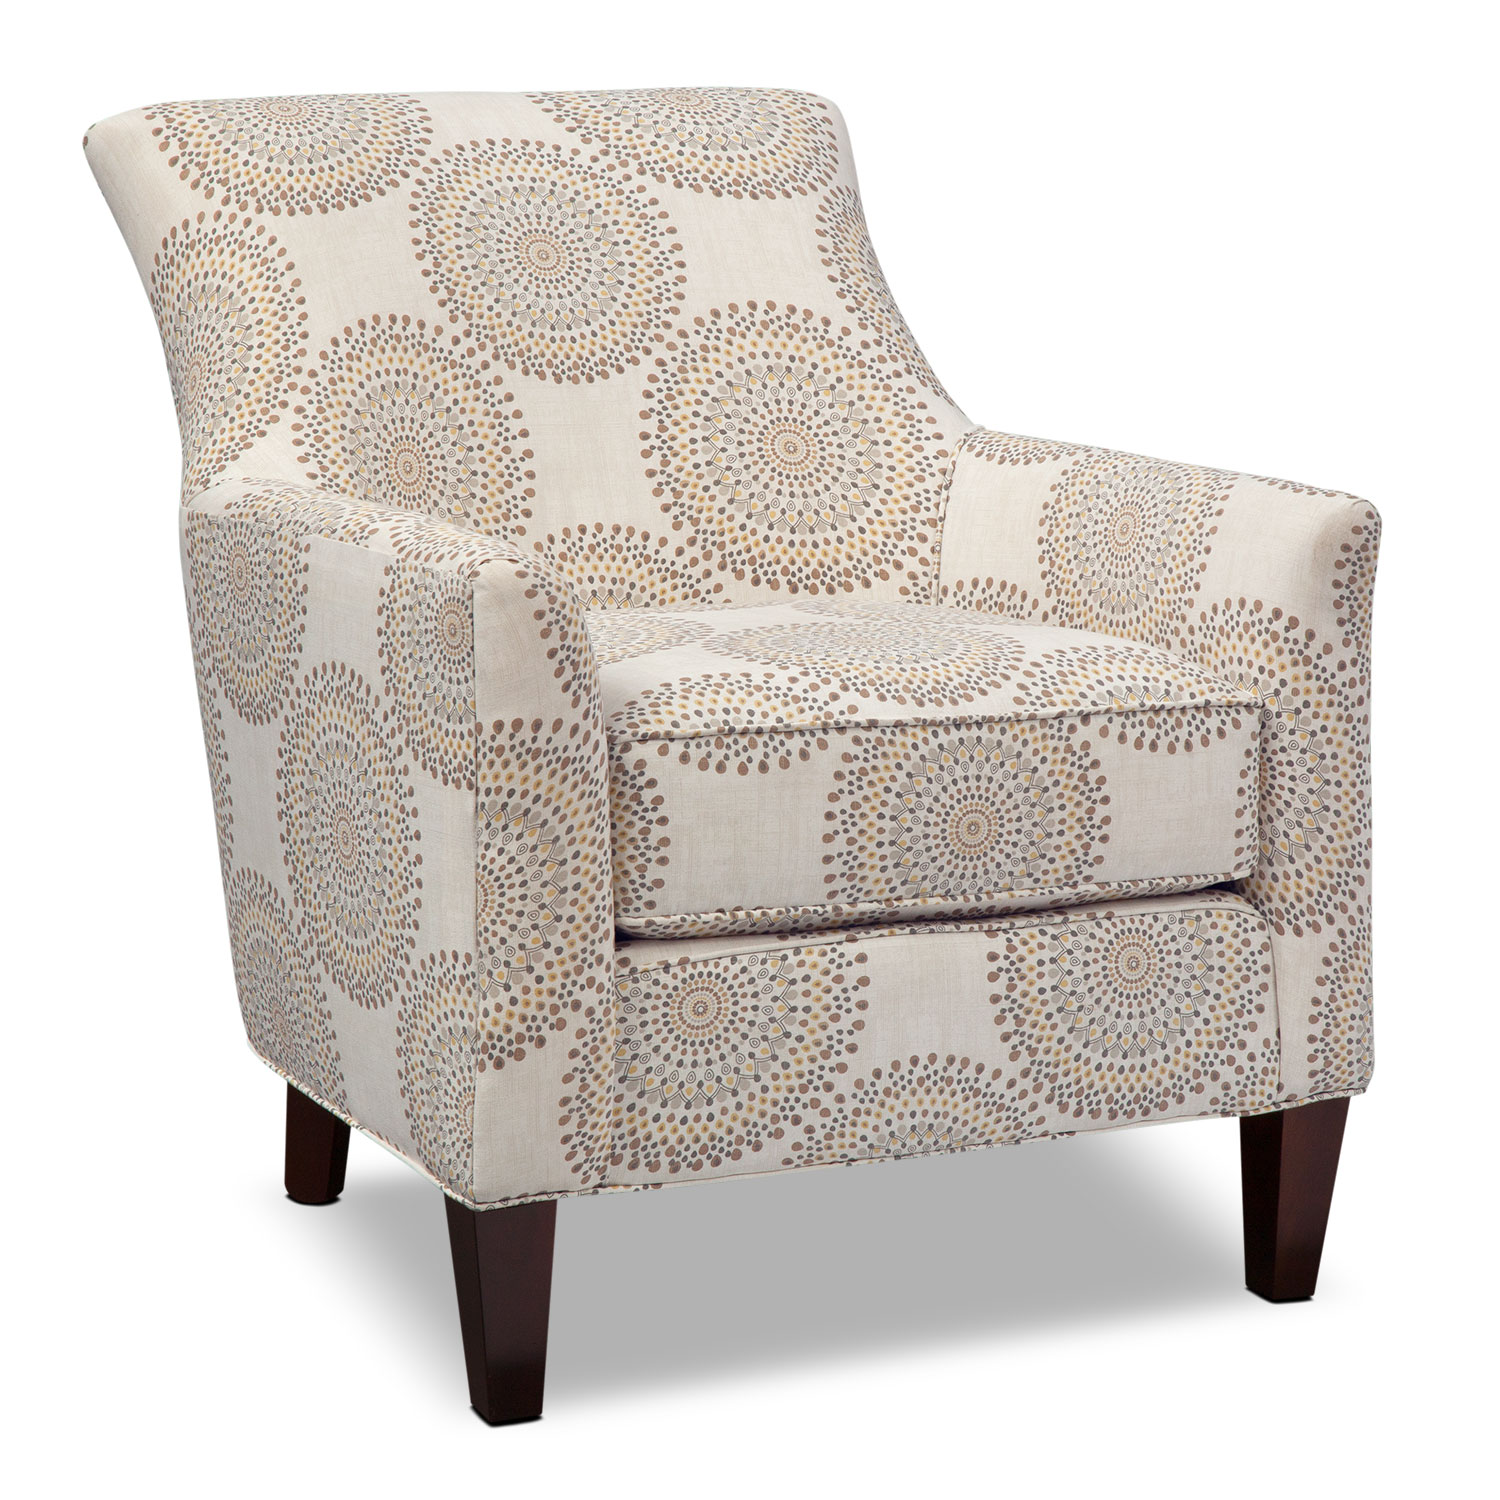 Cozy Accent Chair for Home Furniture Ideas: Dazzling Accent Chair For Home Furniture Ideas With Accent Chairs With Arms And Accent Chairs For Living Room